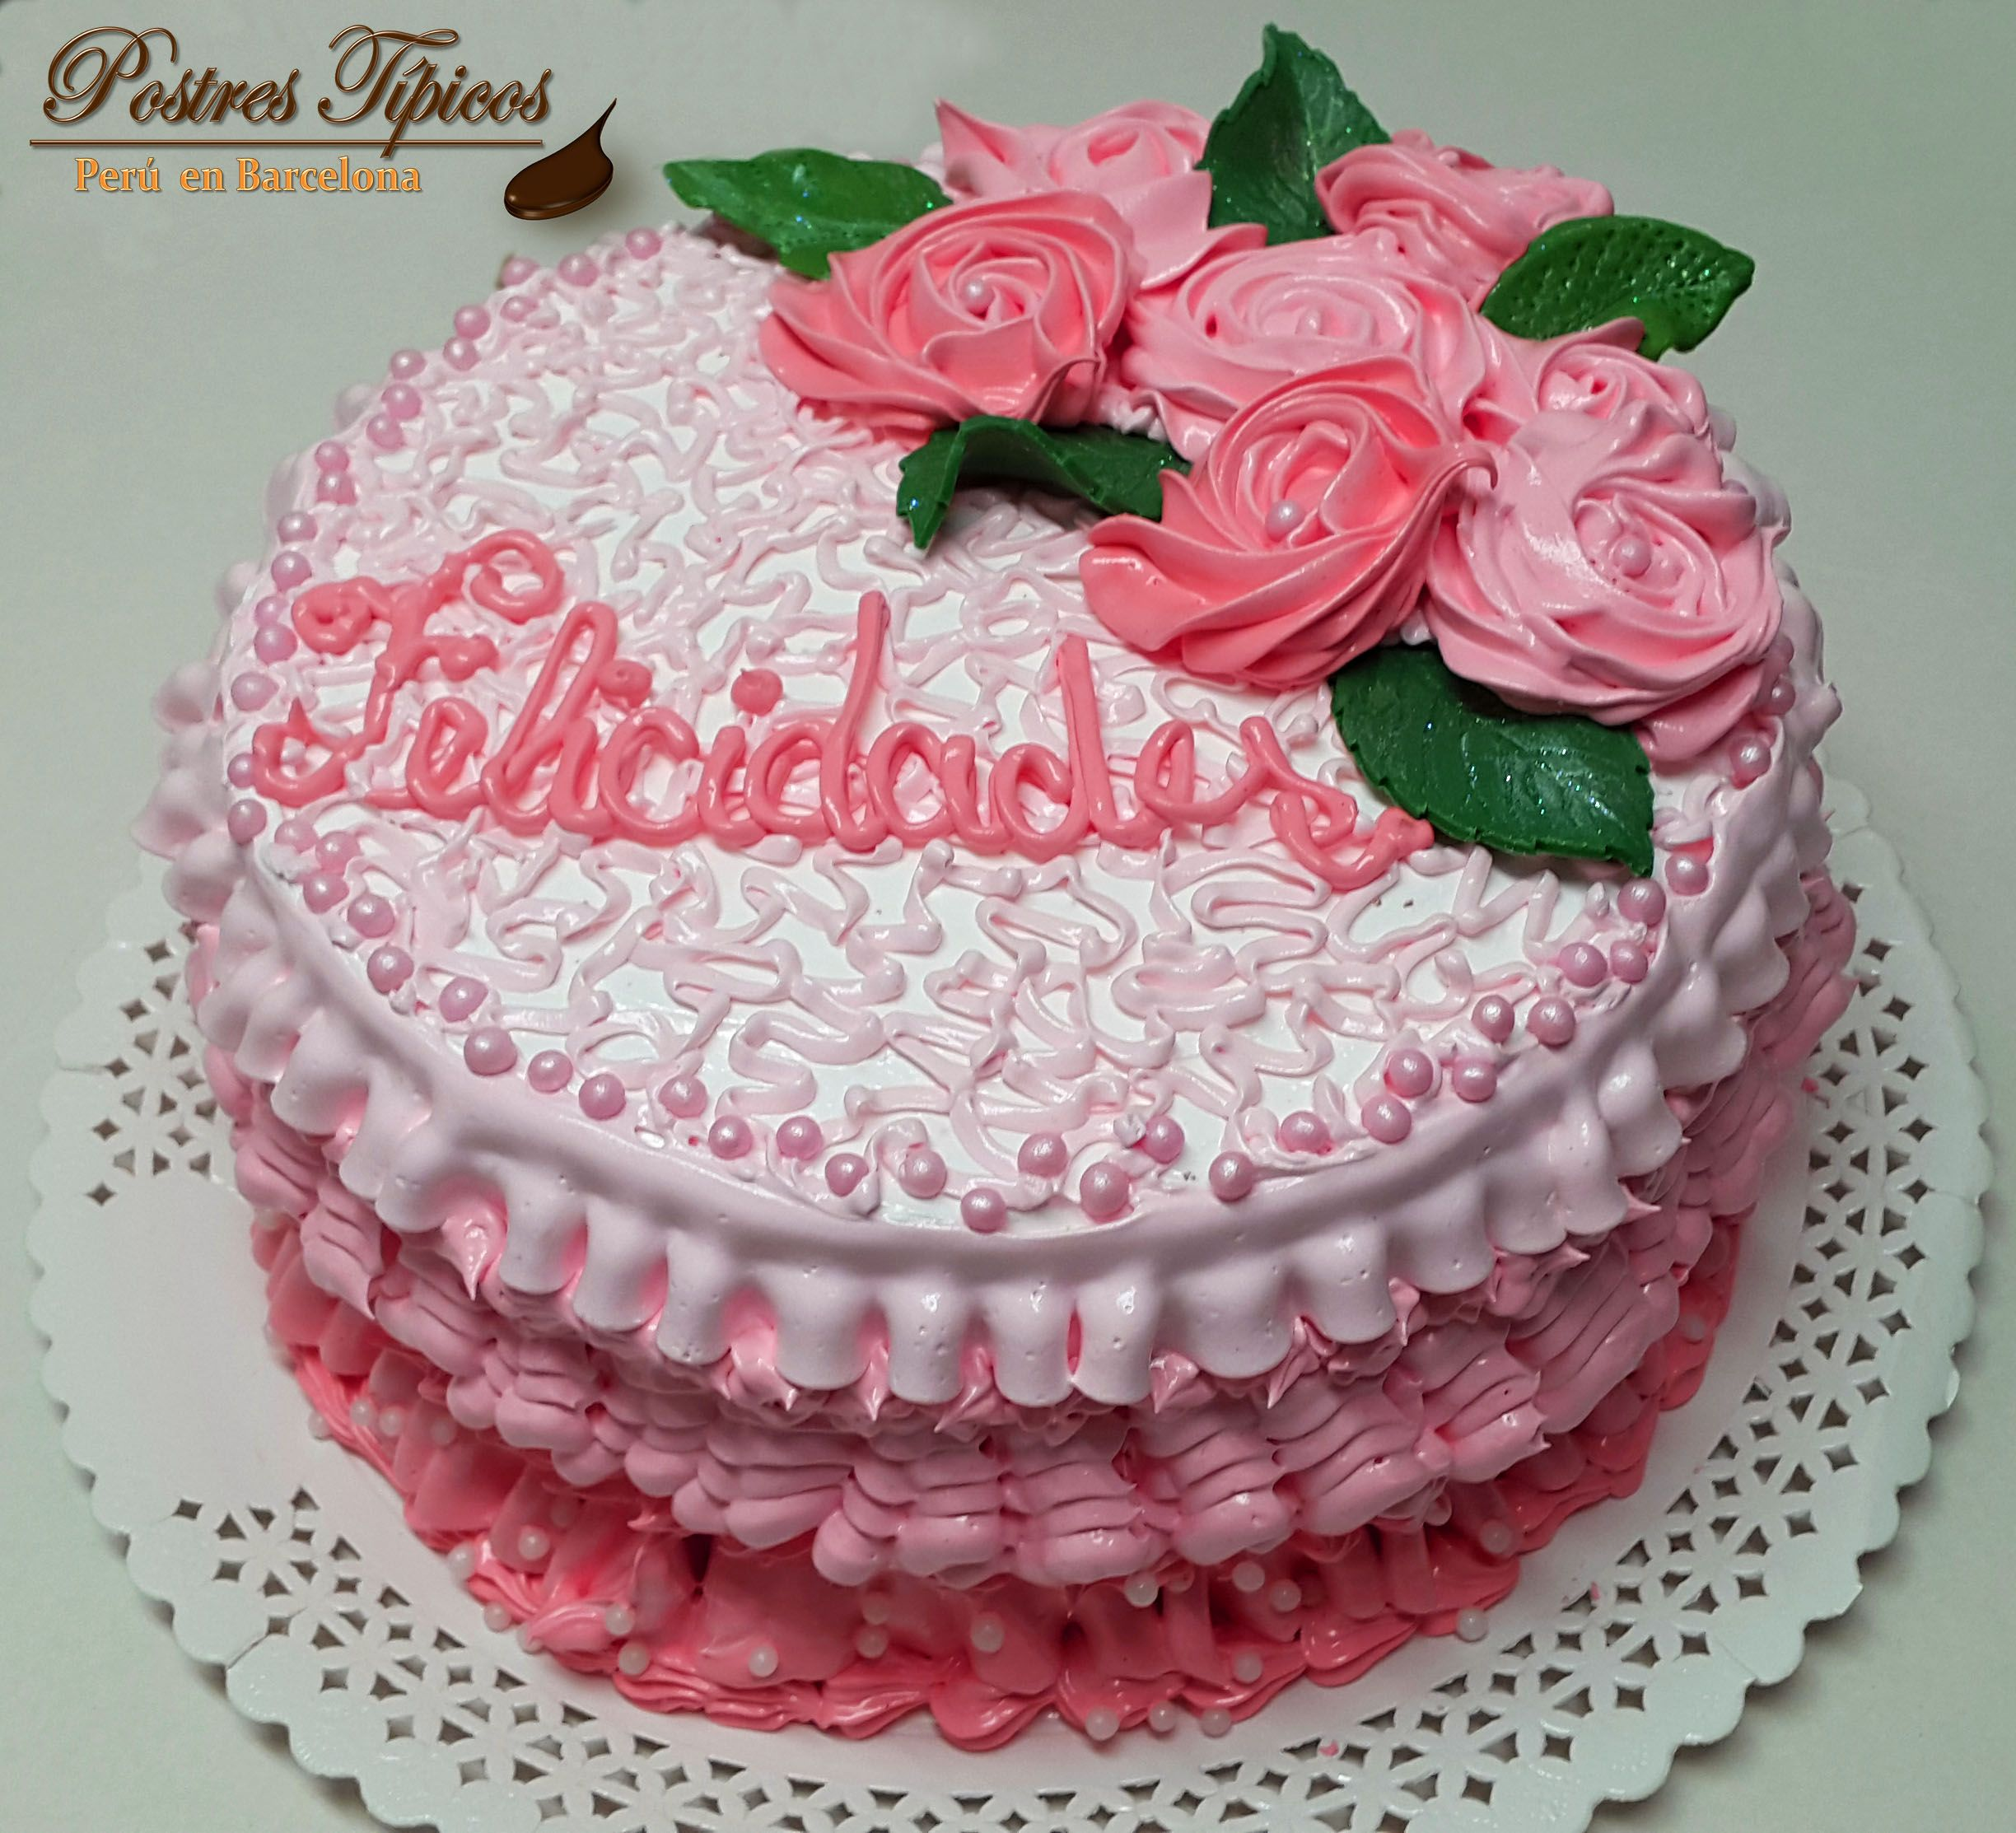 Torta de cumplea os de merengue italiano con diferentes for Tortas decoradas sencillas